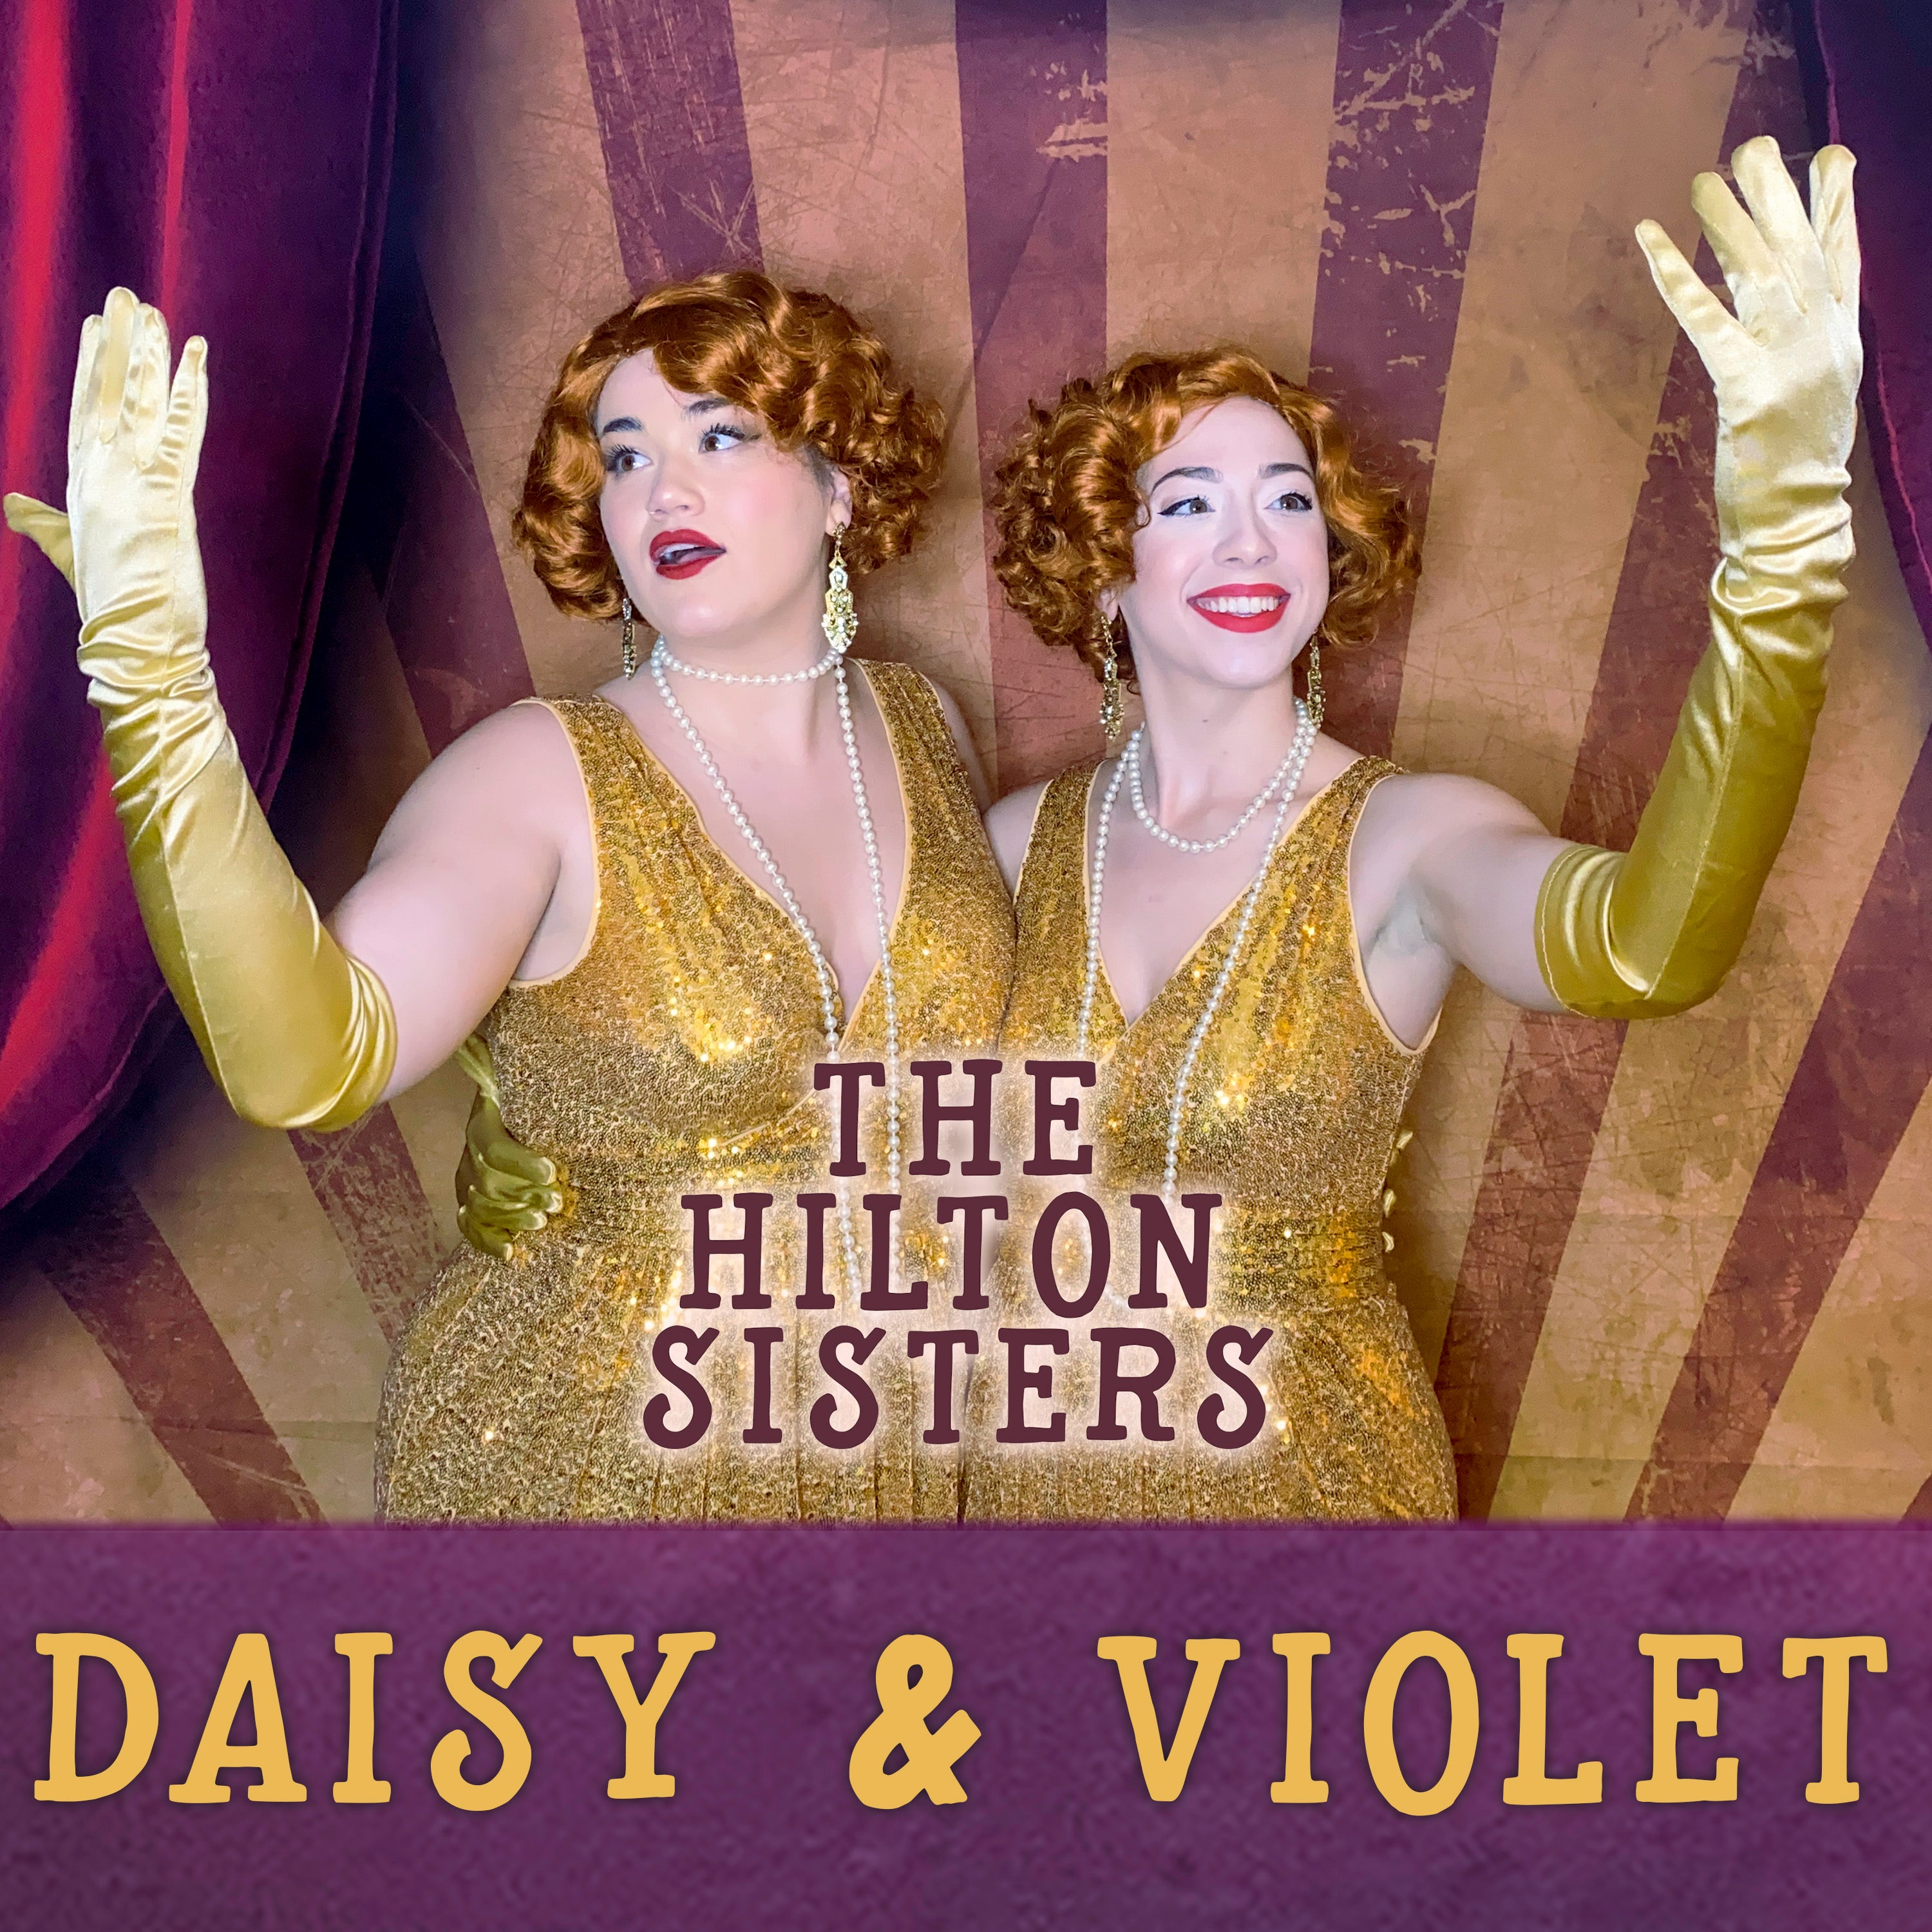 Daisy and Violet, The Hilton Sisters